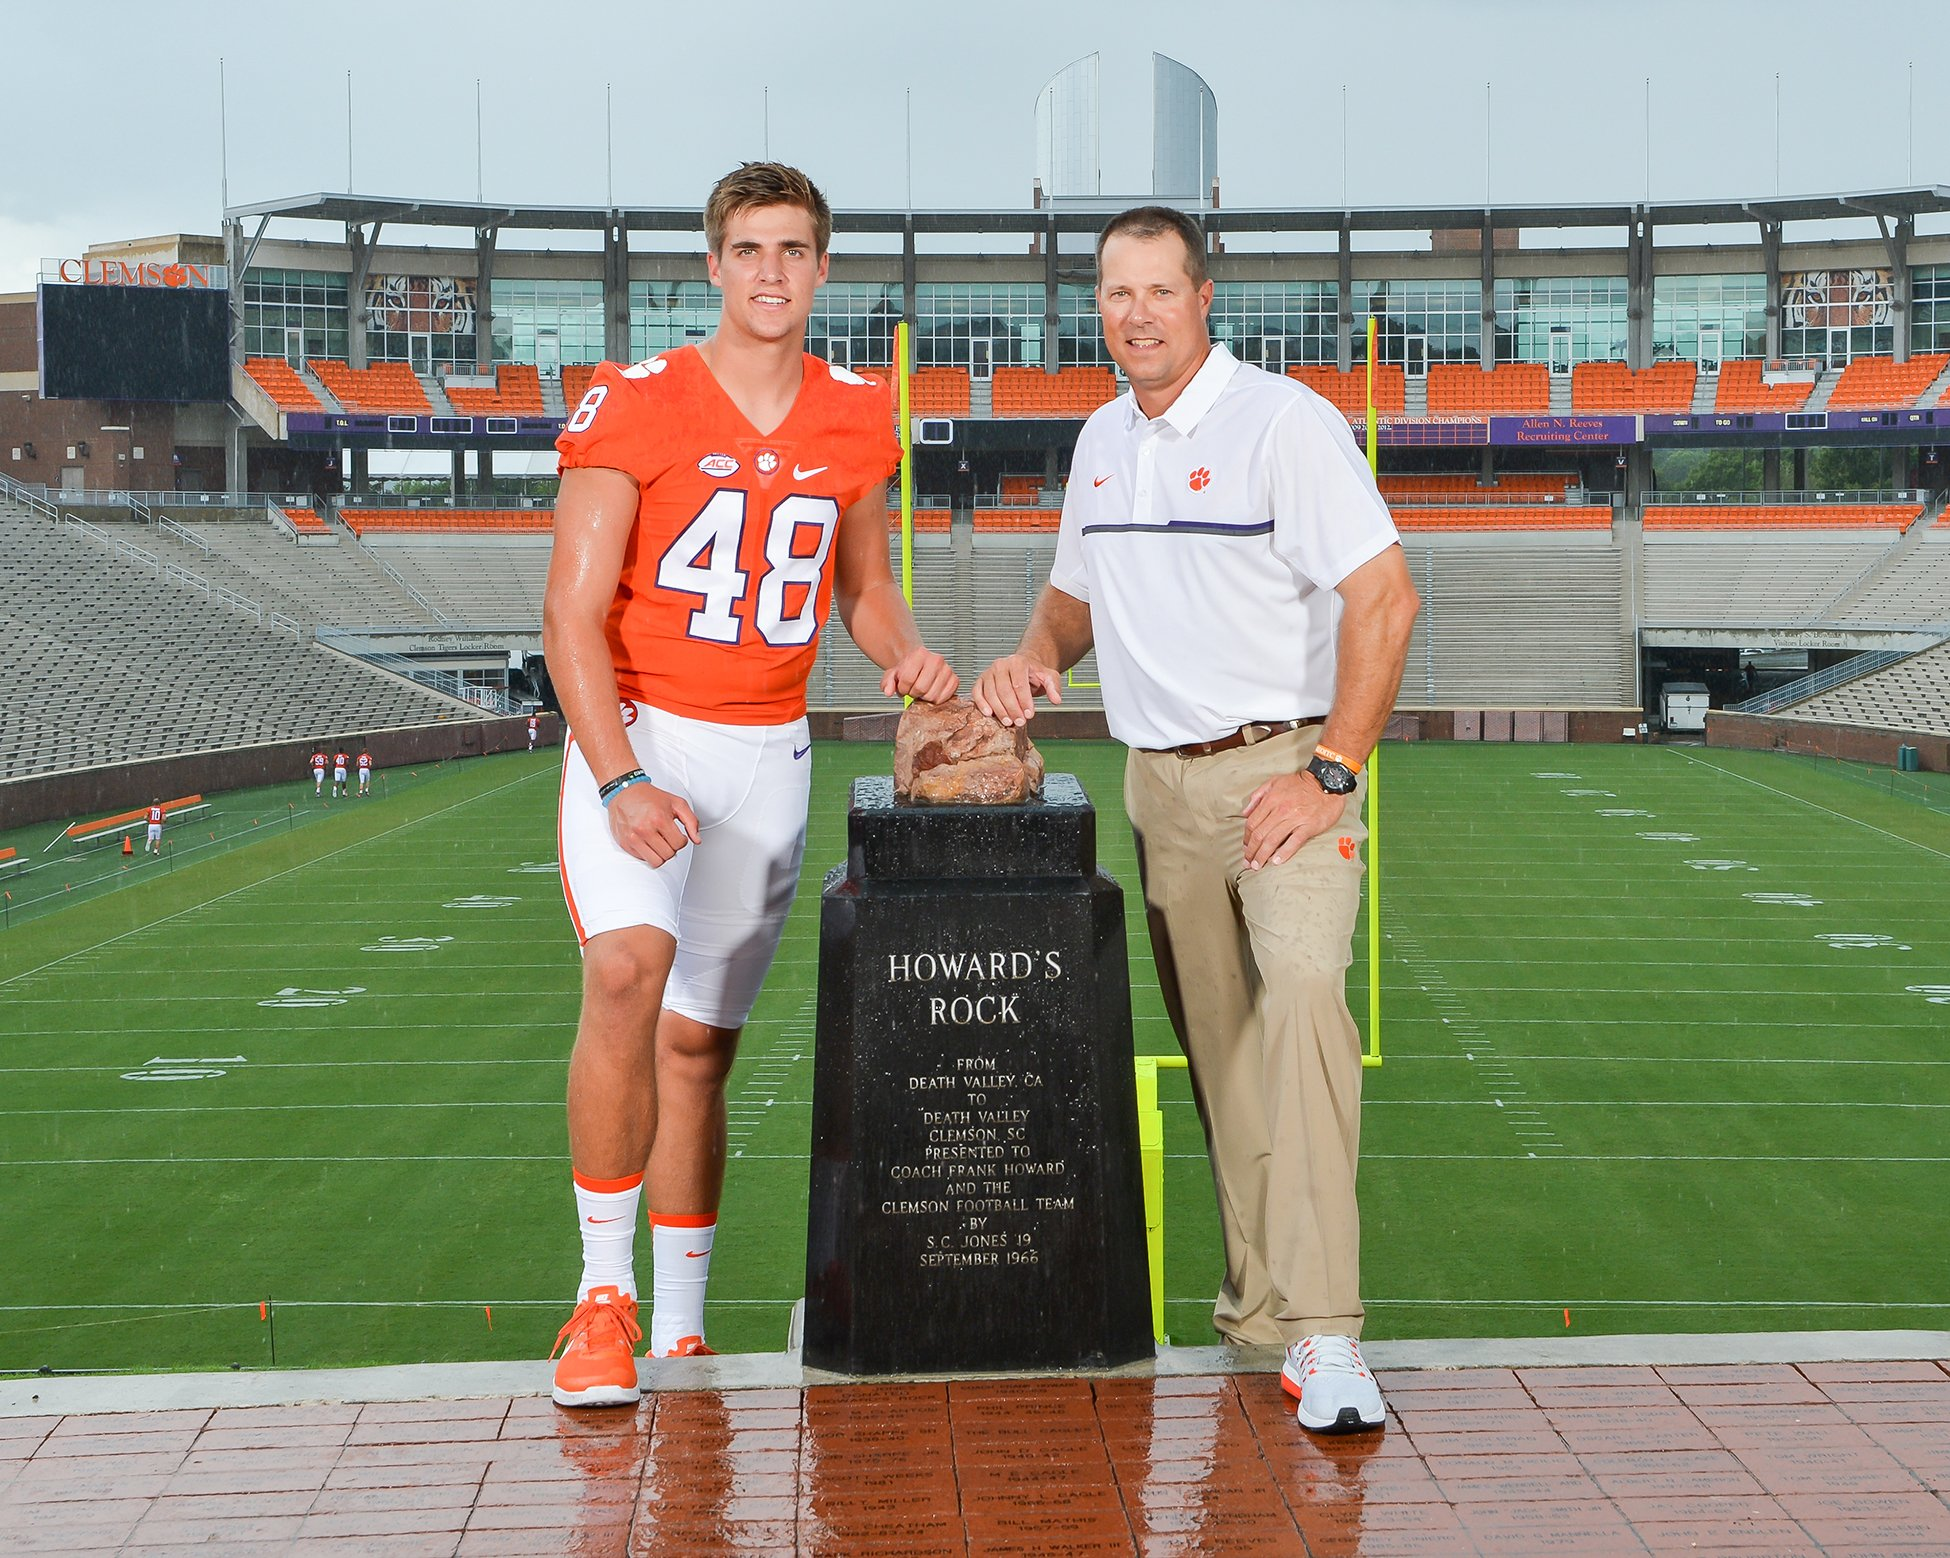 #TBT - Former Tiger Bill Spiers on Picture Day w/his son, Will, in August. Bill is a student asst. with @ClemsonFB. https://t.co/uAap5tCBtV